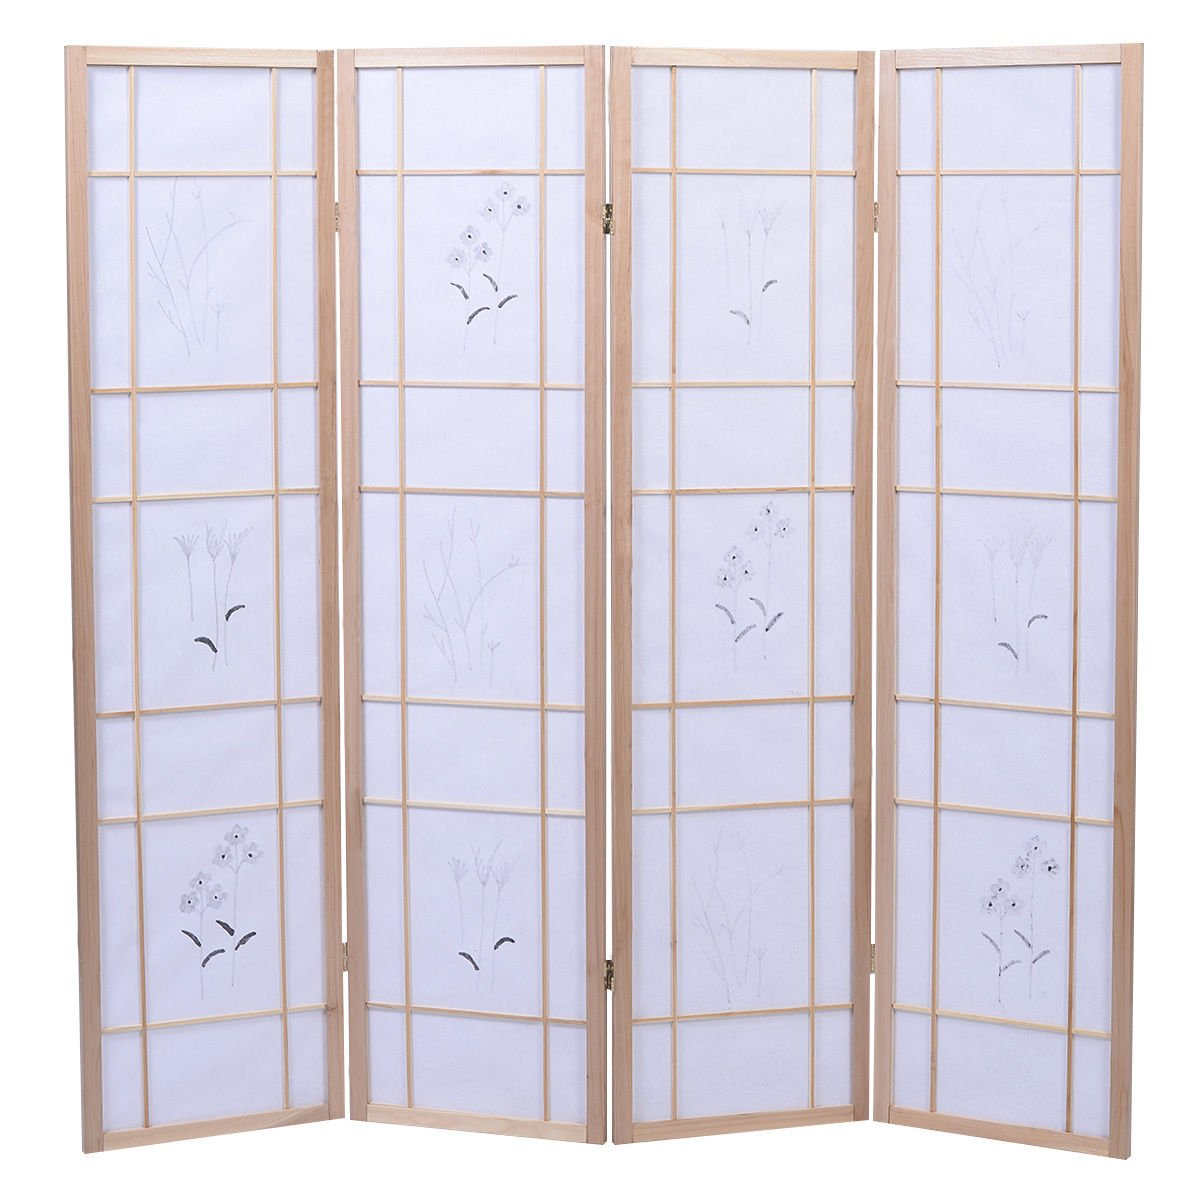 Eight24hours 4 Panel Flowered Room Divider Screen Style Shoji Solid Wood Natrual New